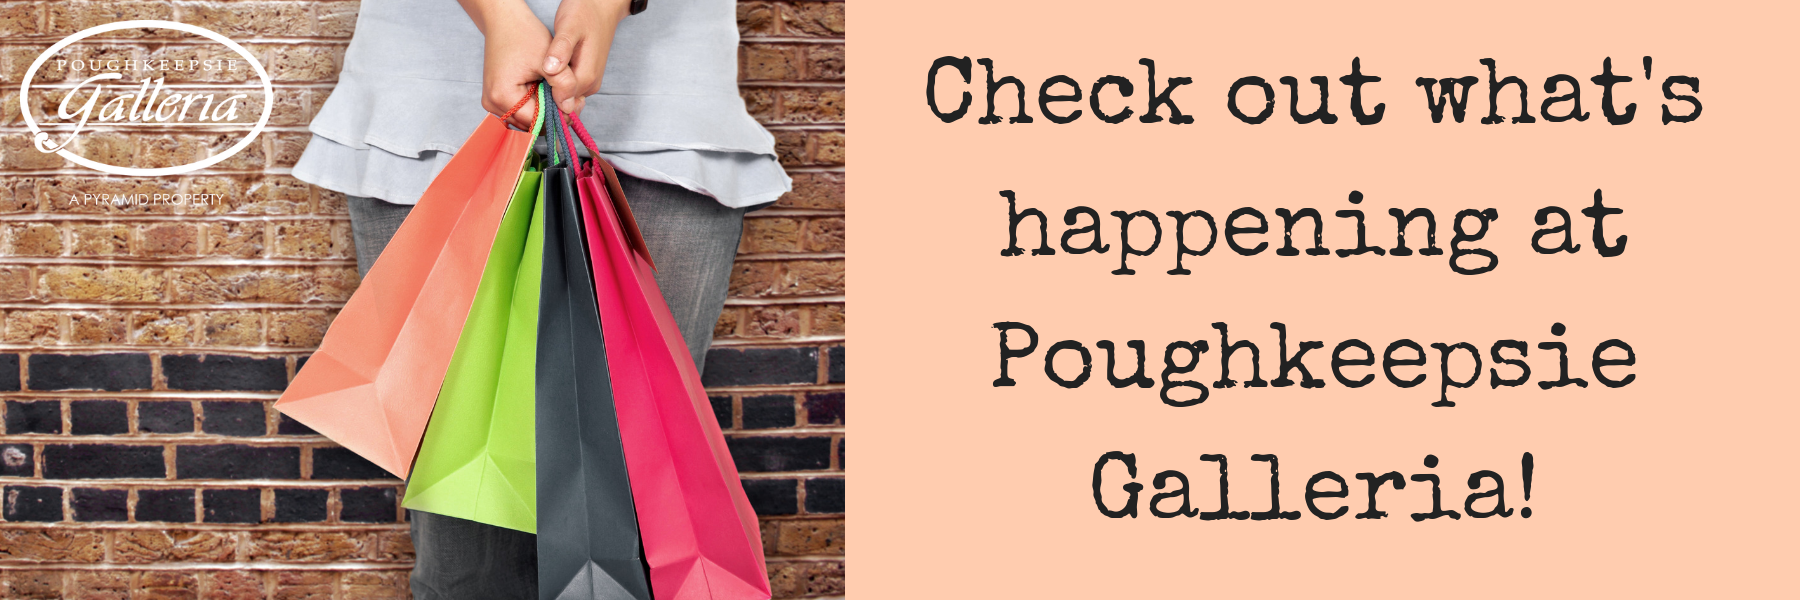 Check out whats happening this weekend at Poughkeepsie Galleria 1